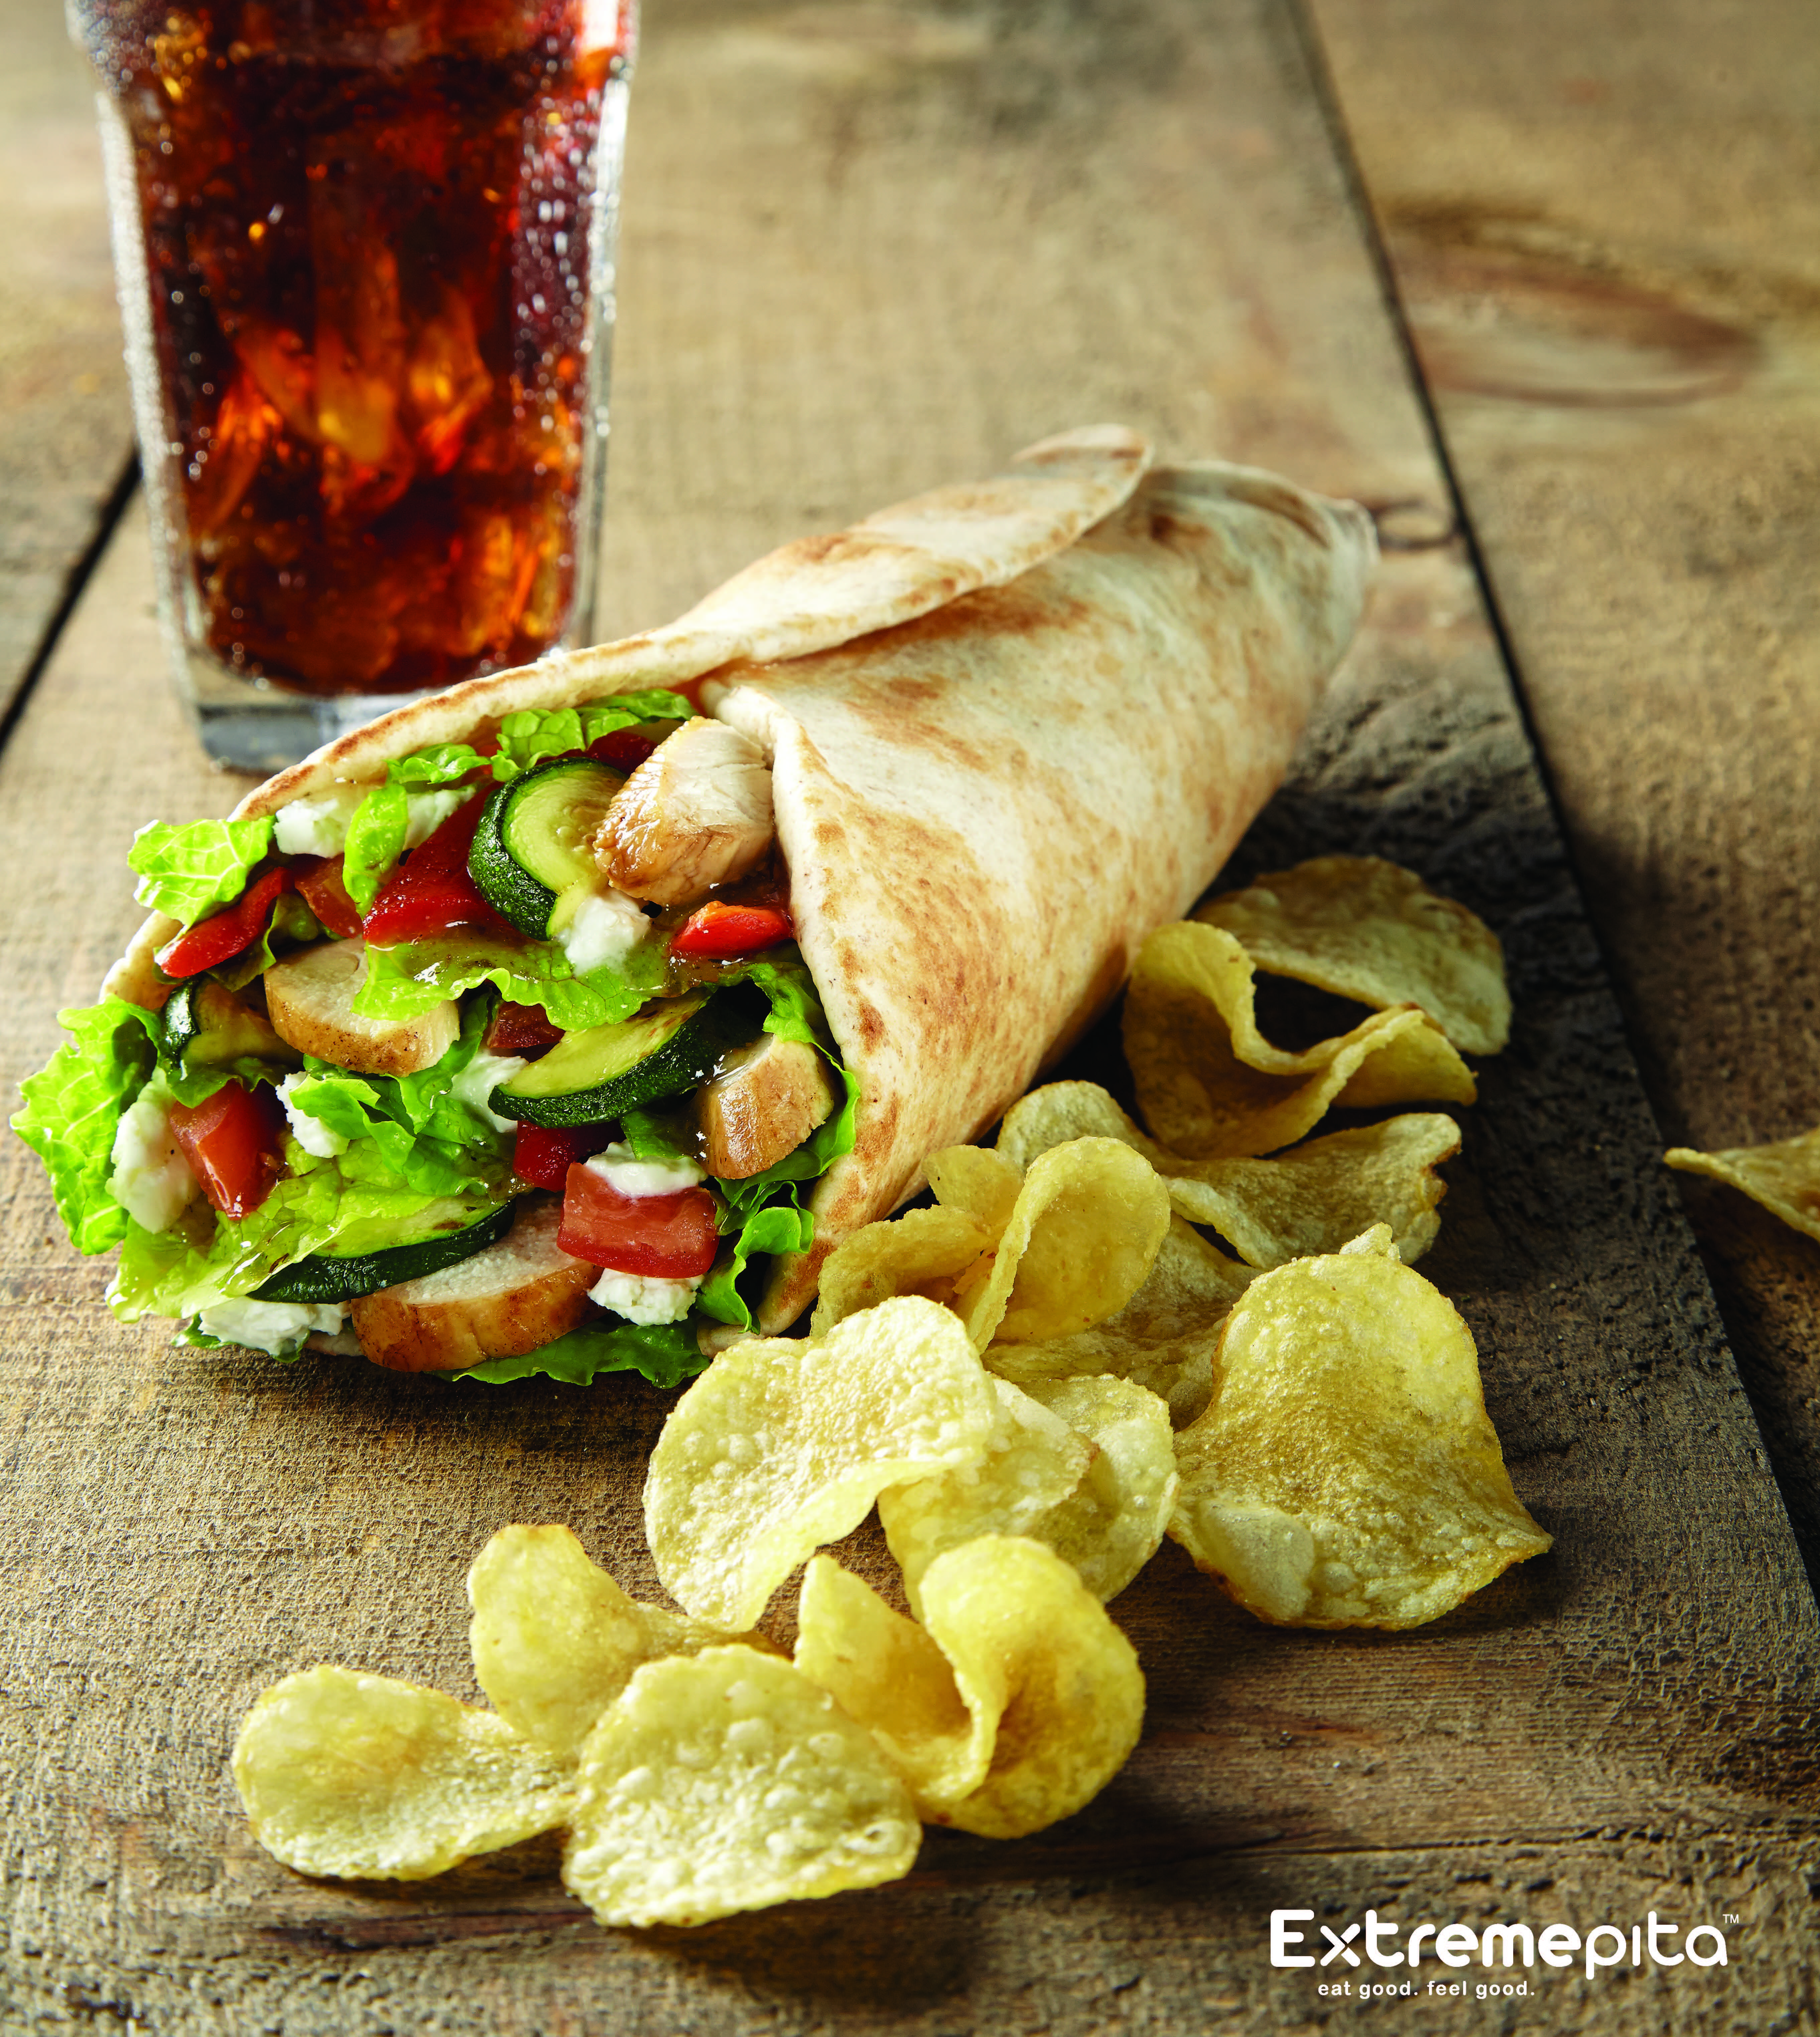 Extreme Pita Grilled Chicken and Goat Cheese Promo